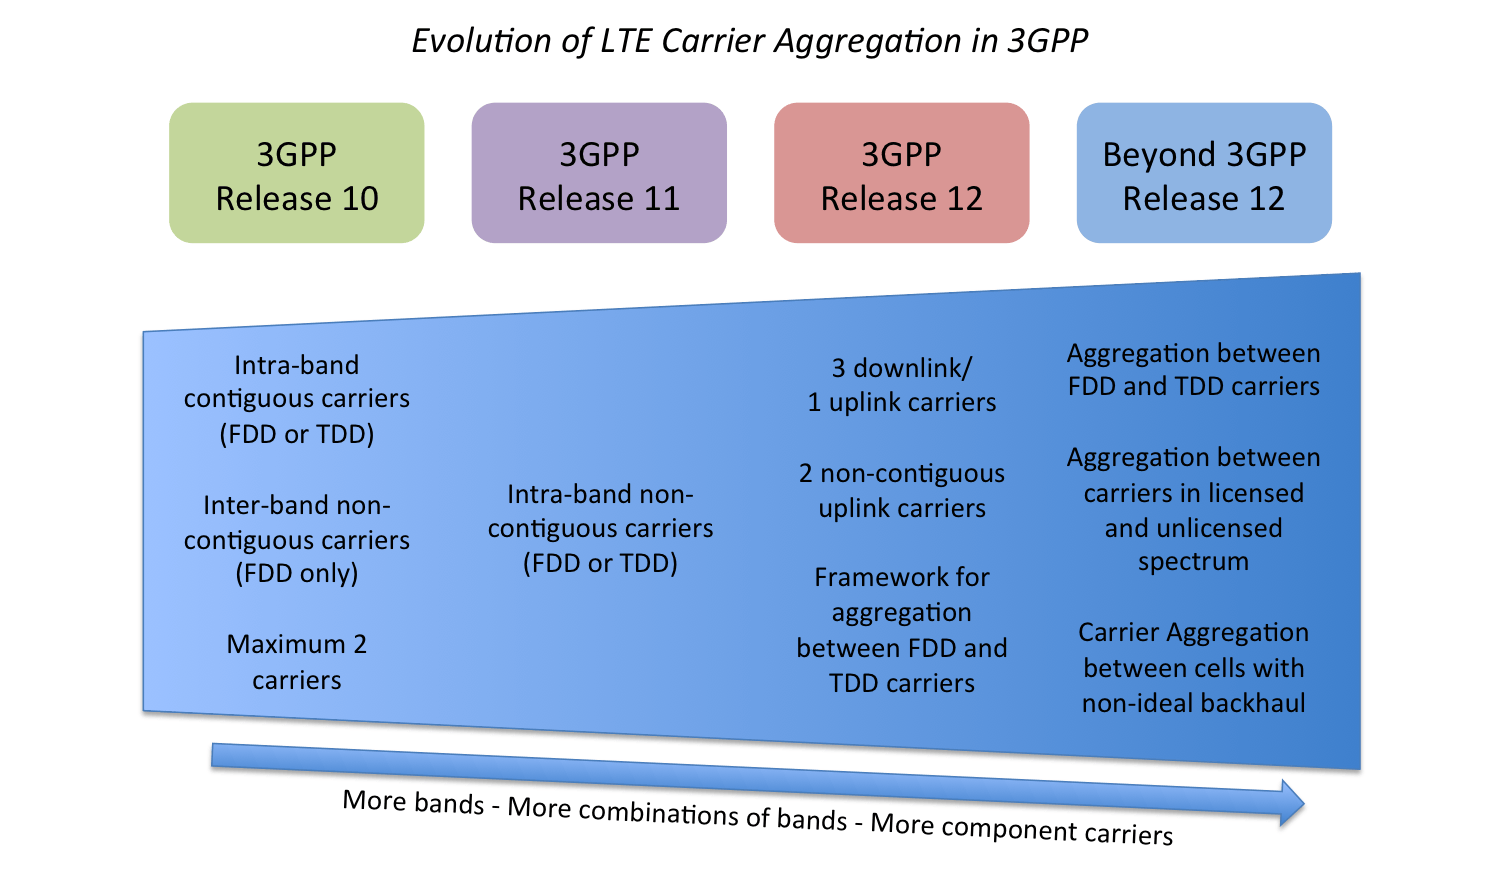 Diagram identifying new LTE-Advanced Carrier Aggregation features introduced in 3GPP Release 10 onwards